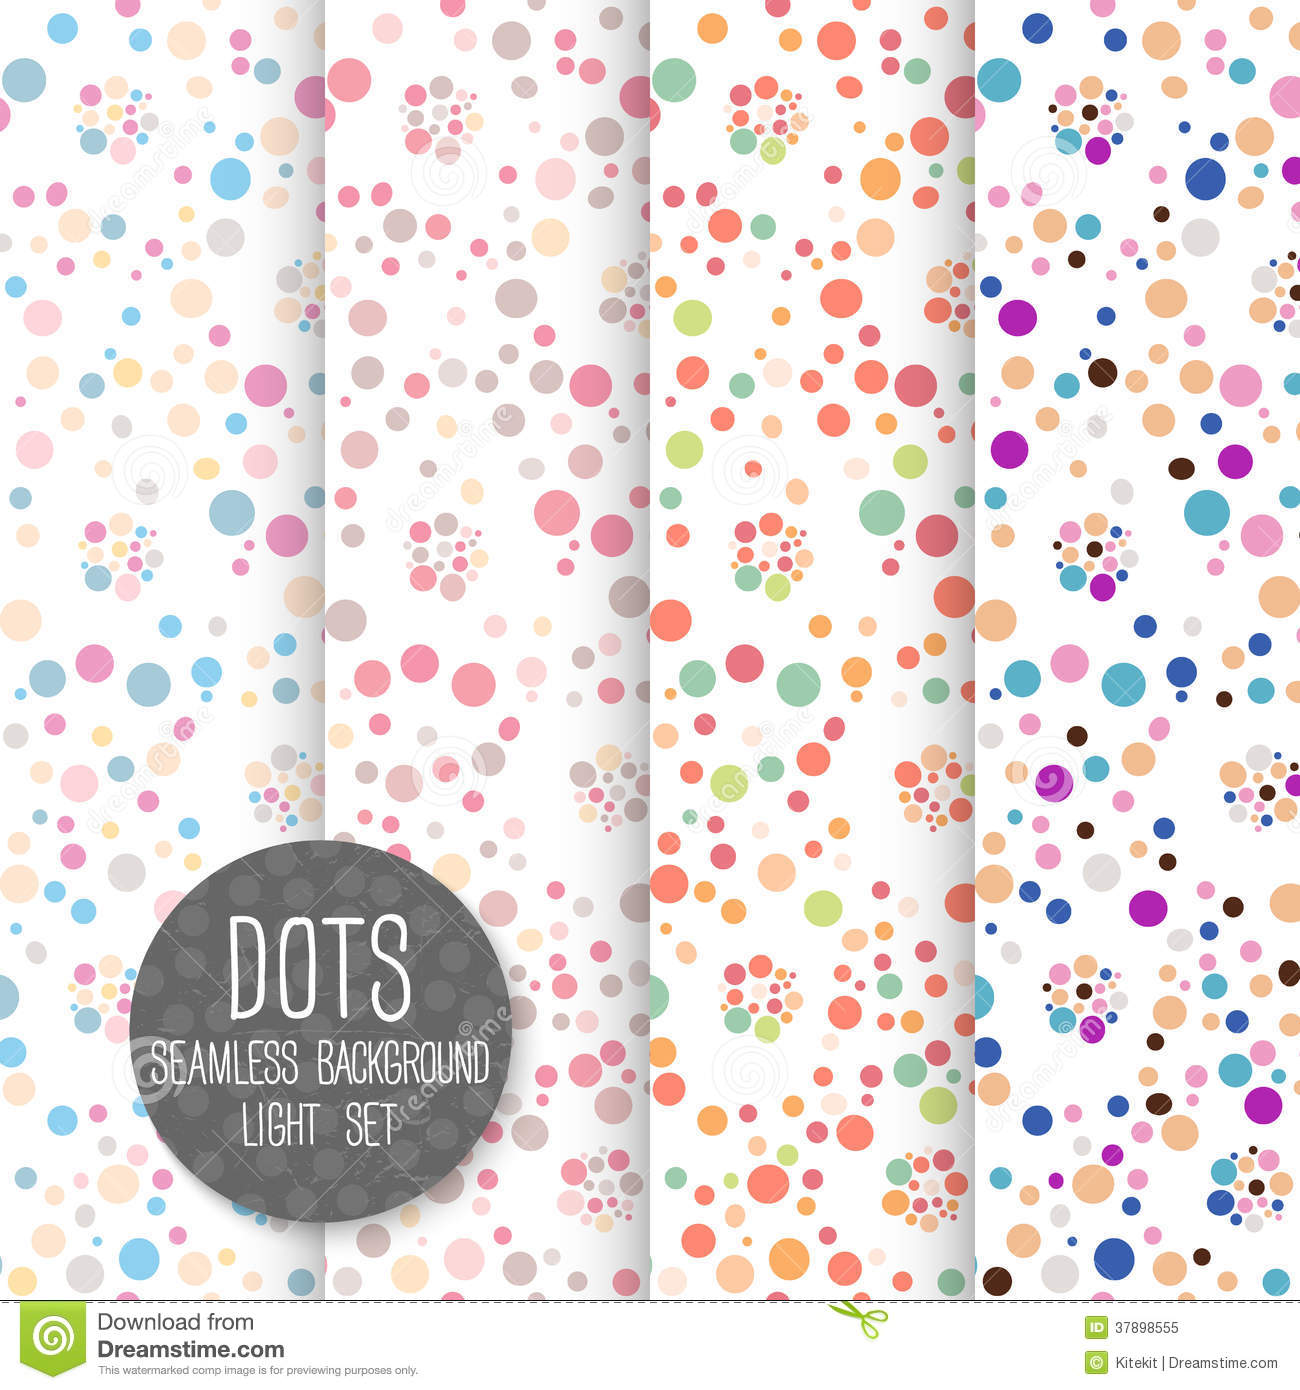 Polka dot background free download.